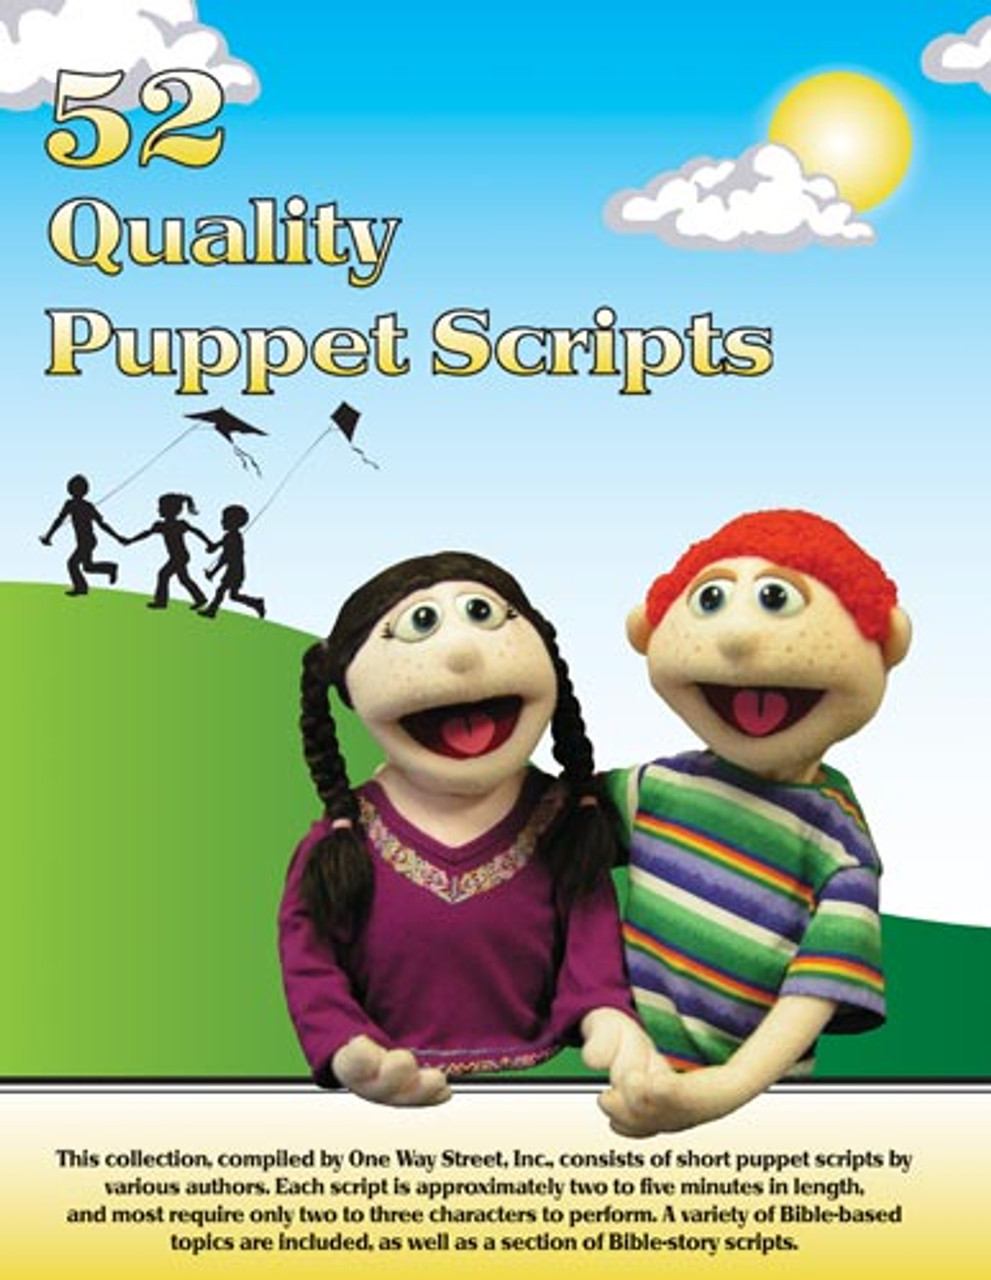 52 Quality Puppet Scripts